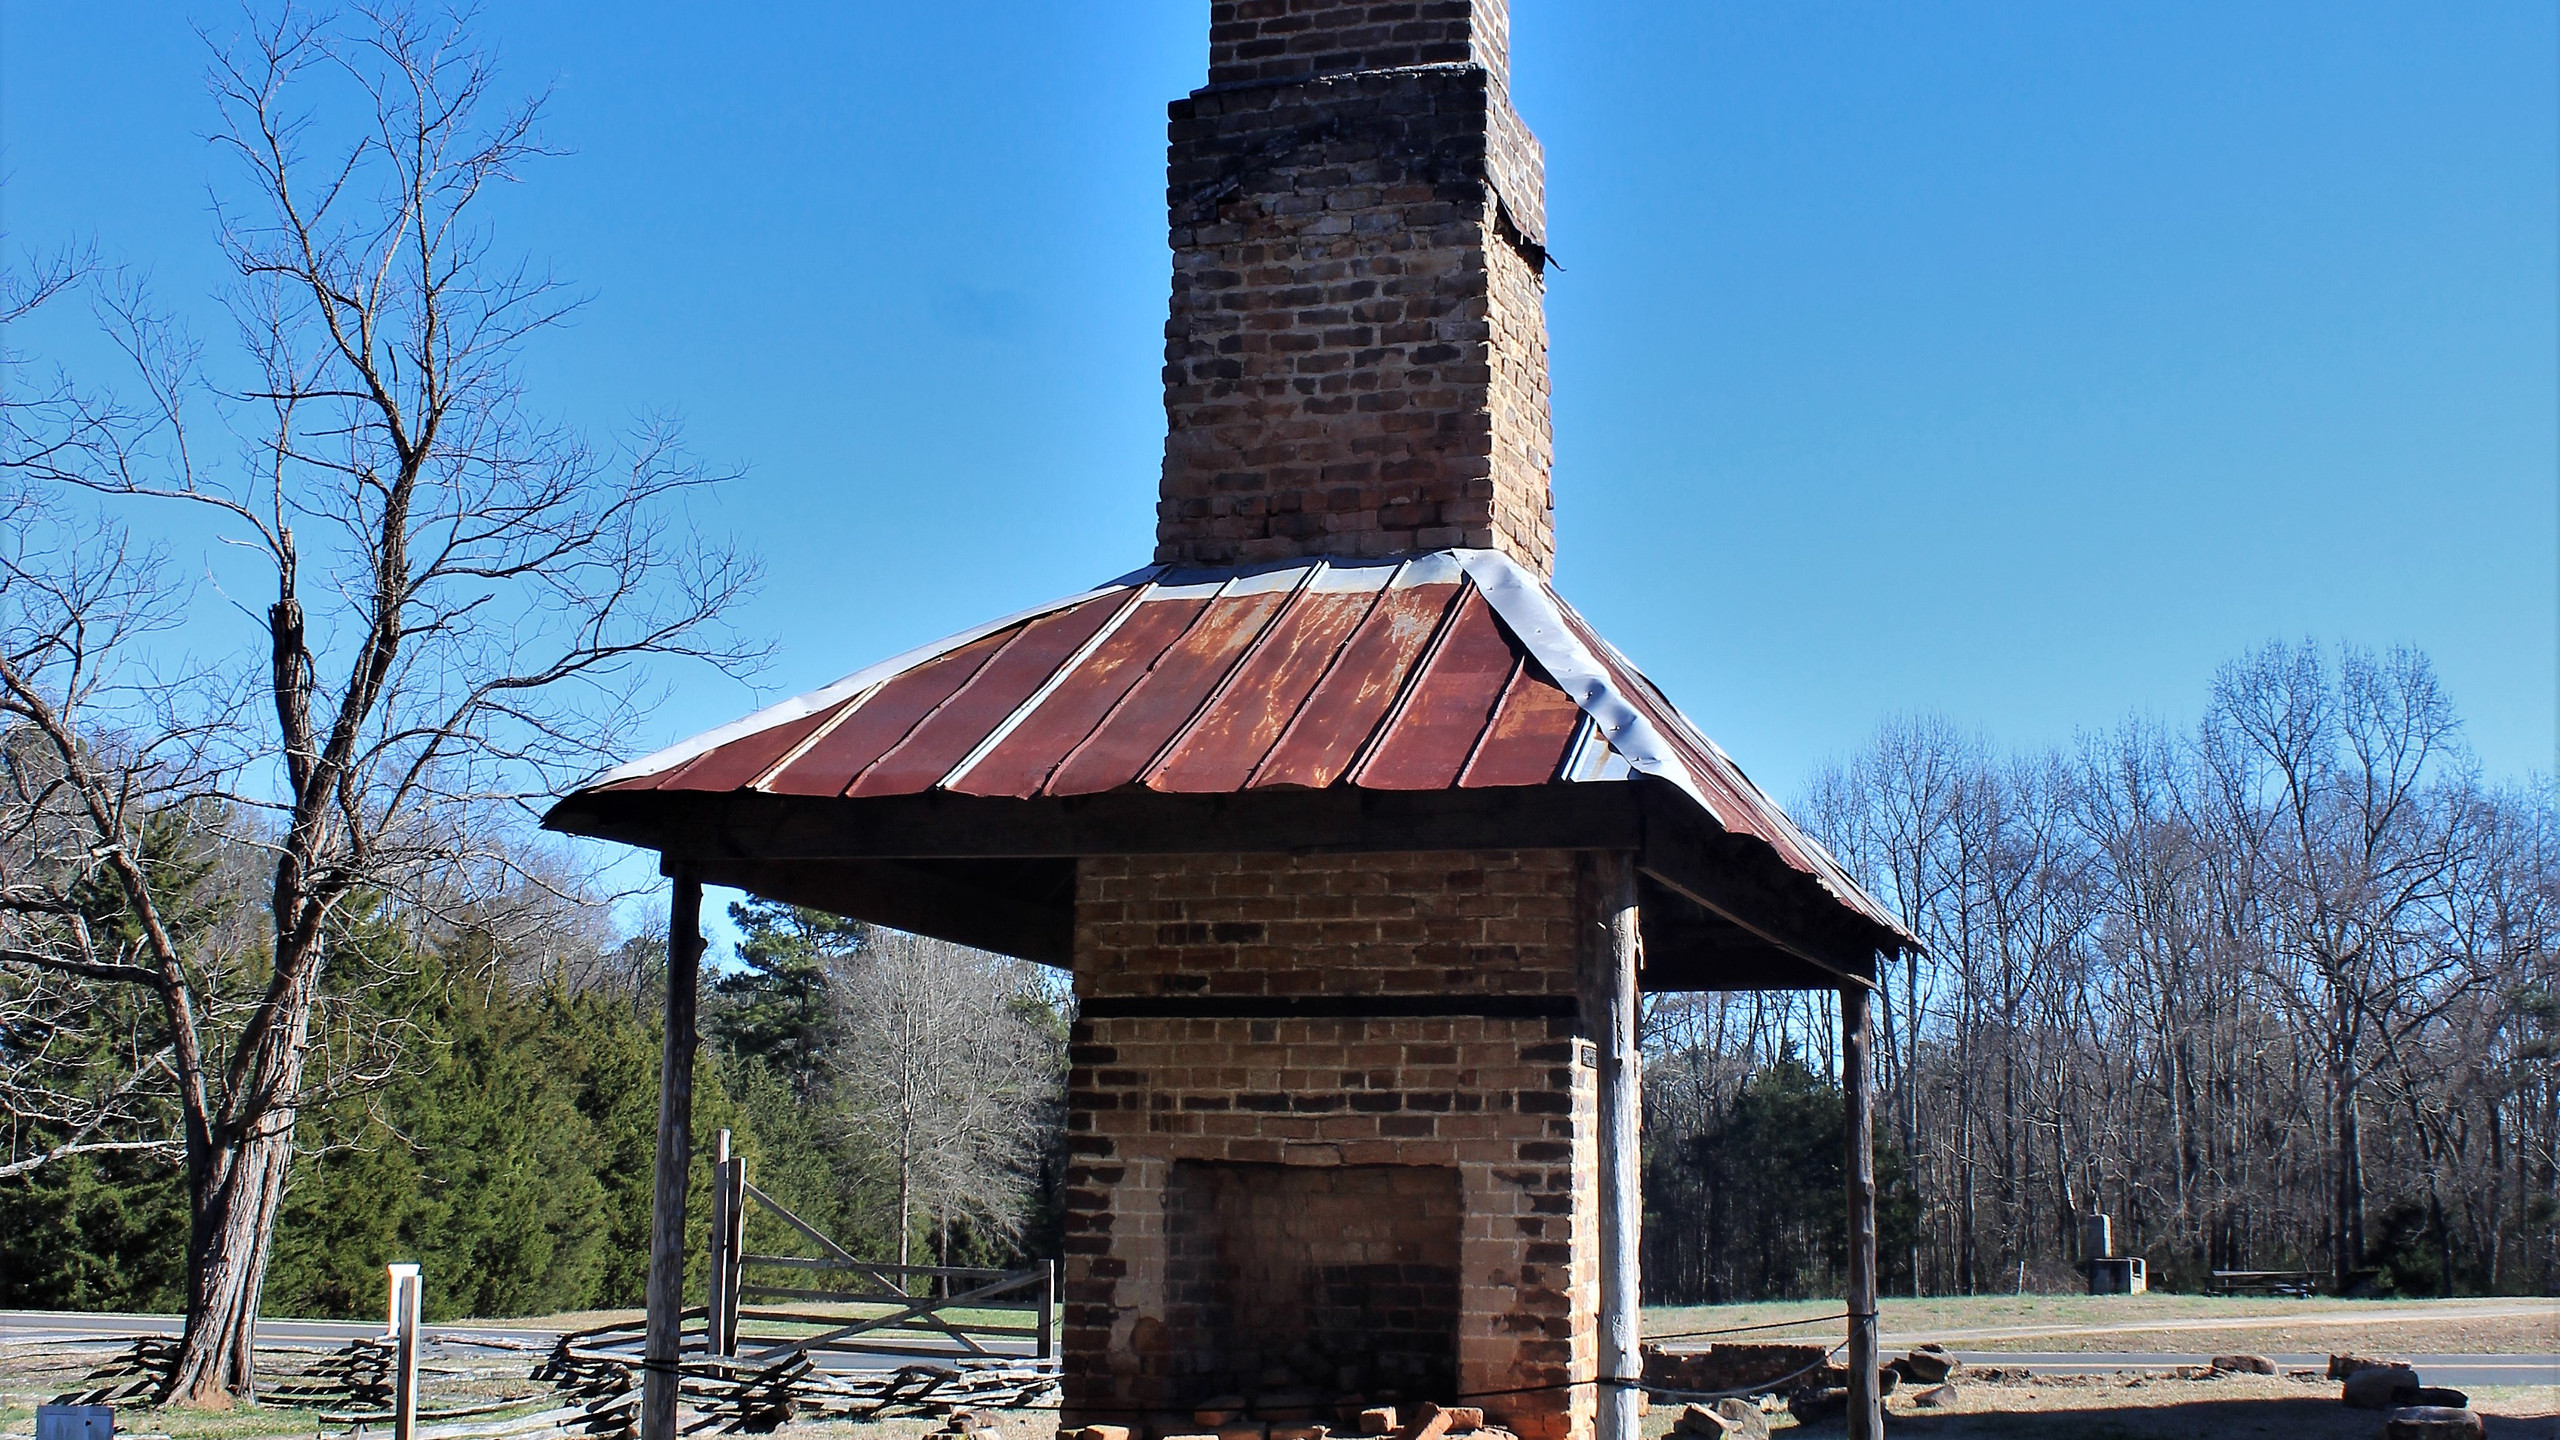 Chimney Stack of the Bratton Store